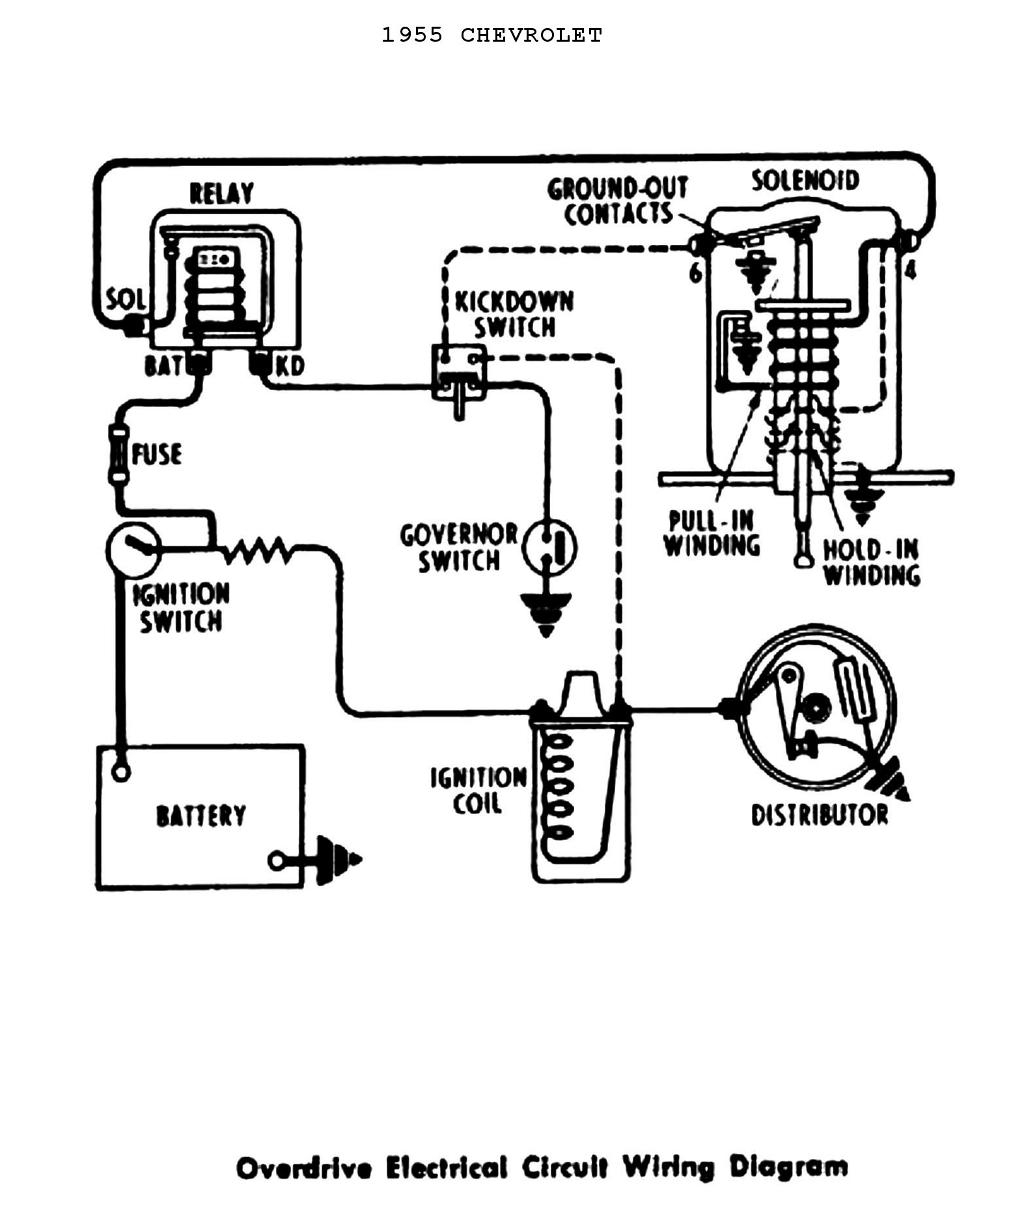 distributor wire diagram gm electronic distributor wire diagram